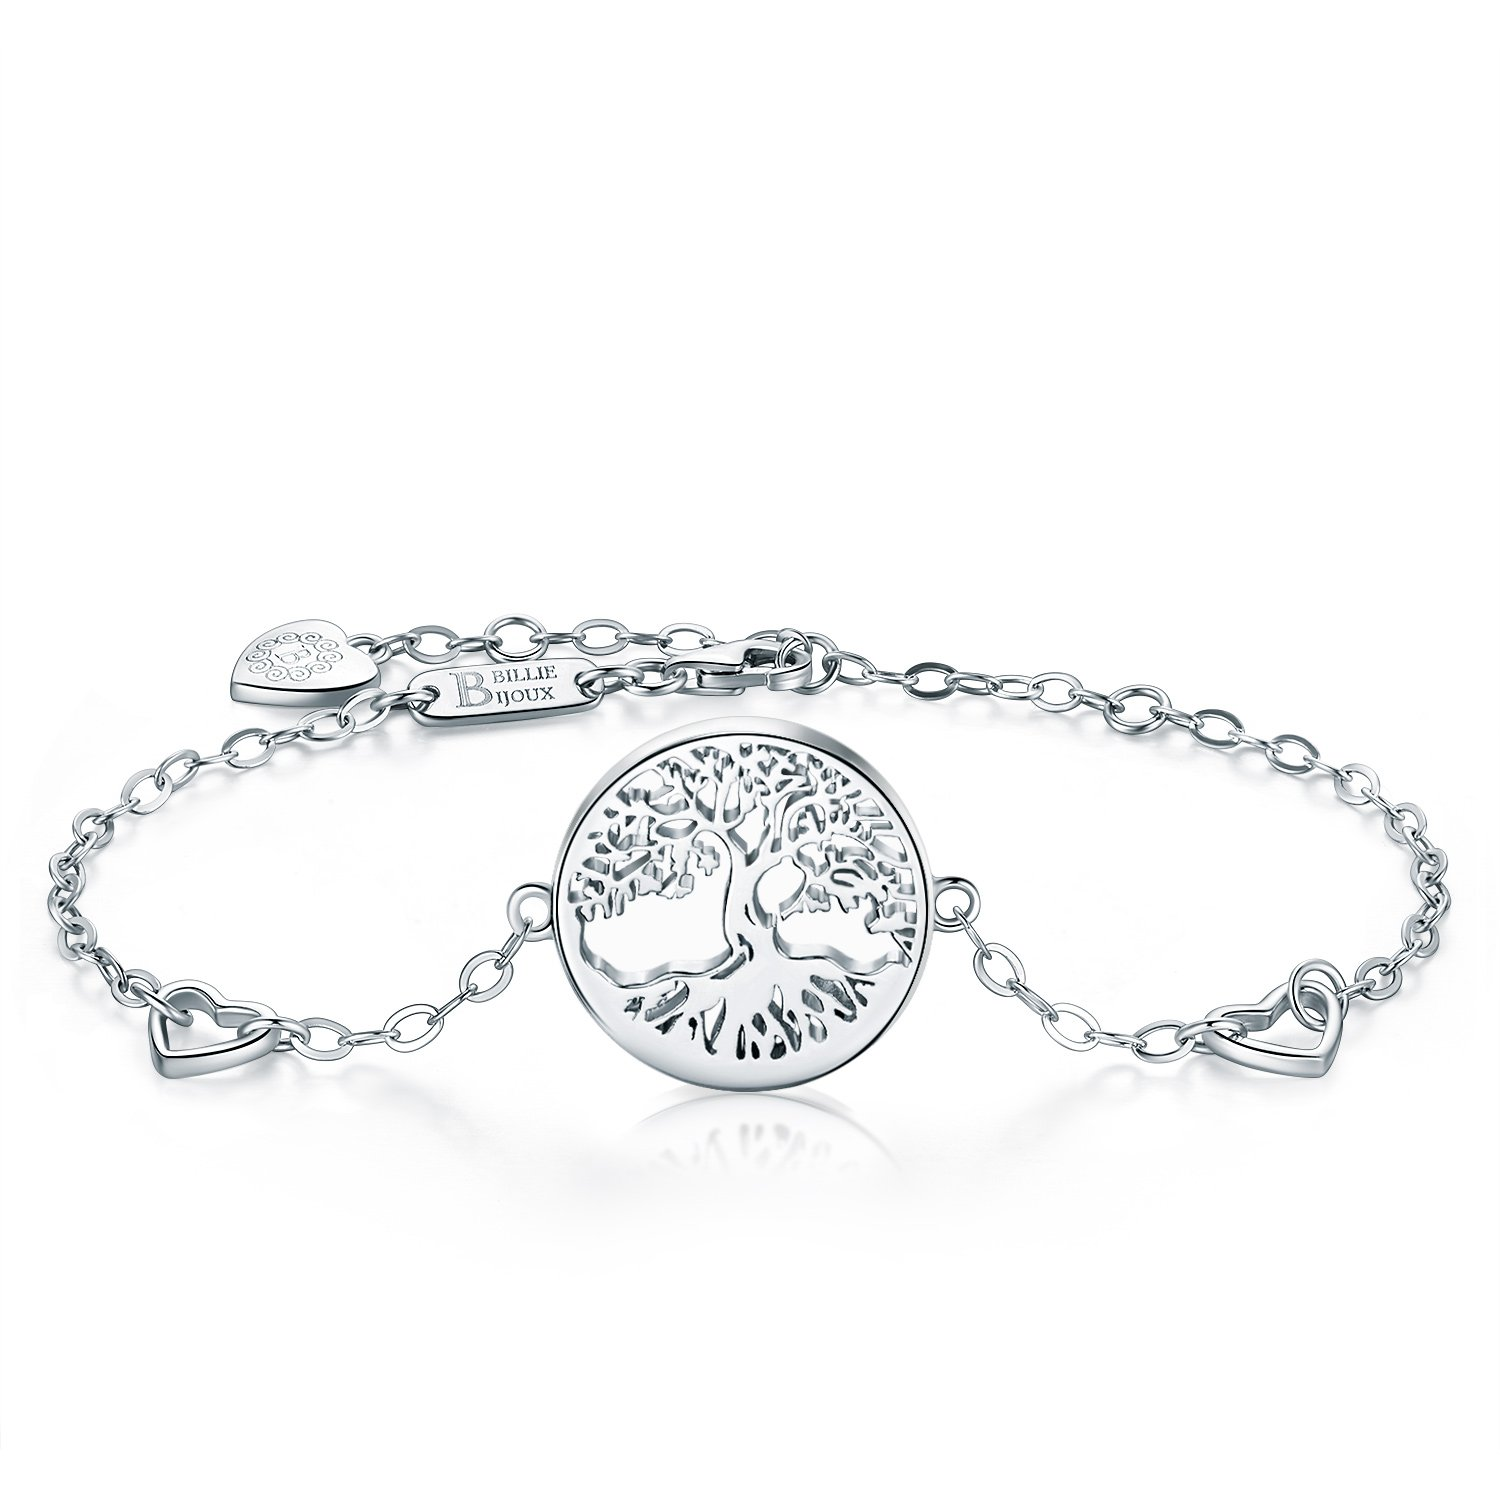 Billie Bijoux Women 925 Sterling Silver Tree of Life Heart Charms Adjustable Bracelet White Gold Plated Best Gift for Graduation, Christmas, Mother's Day and Birthday